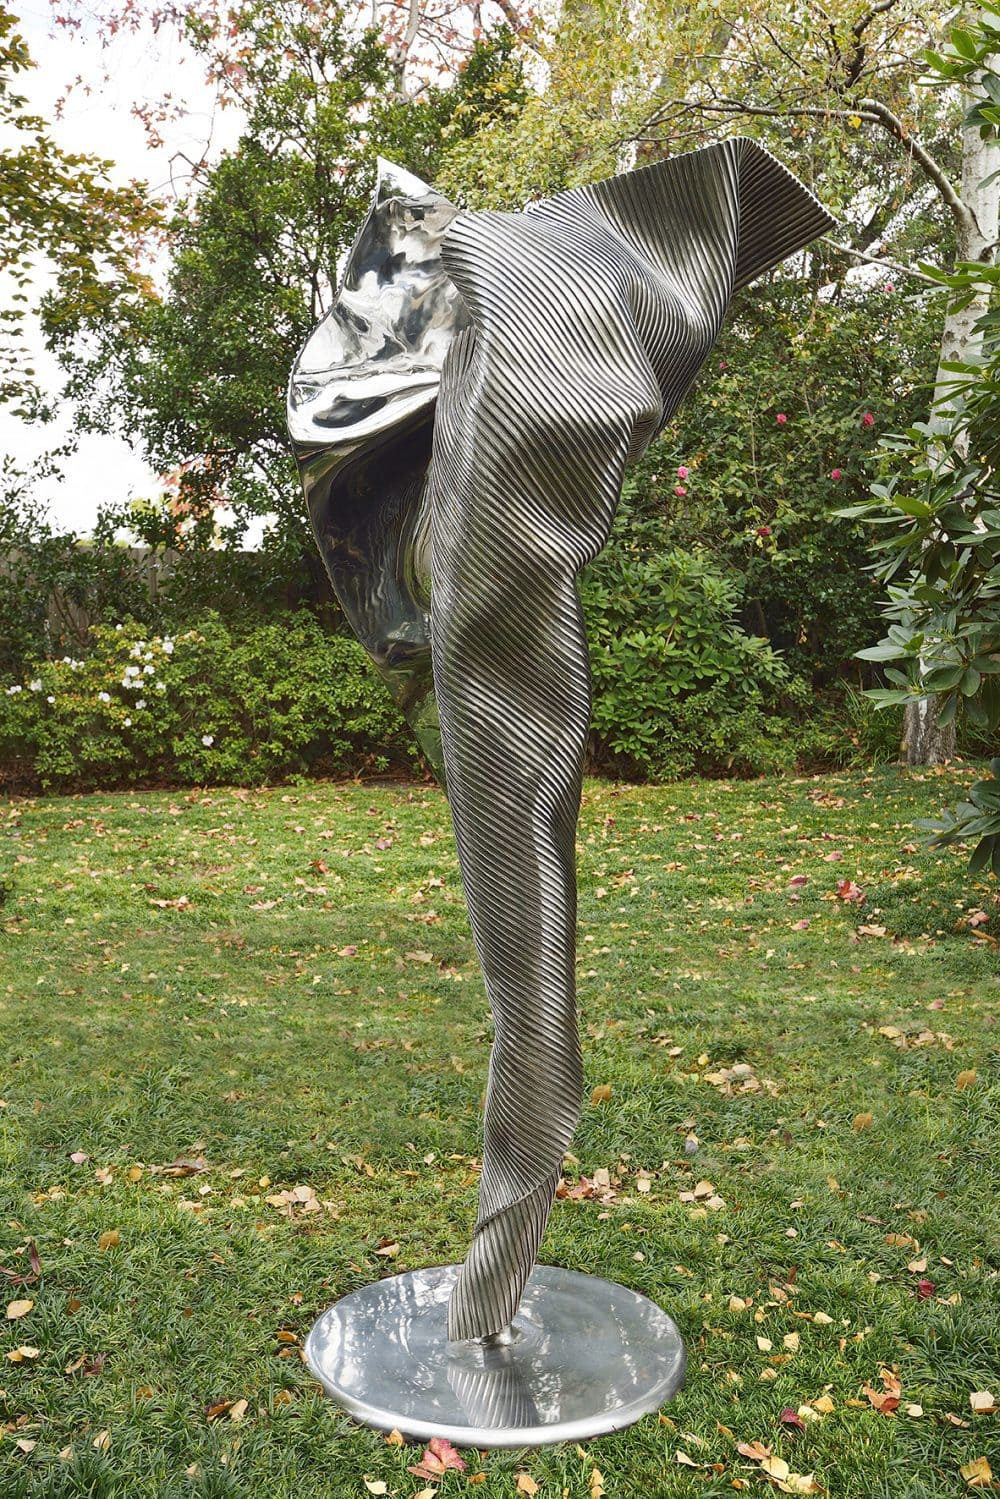 'I Am', 2015, stainless steel, 160 x 70 x 52 cm, artist's proof, edition of 12 + 1AP